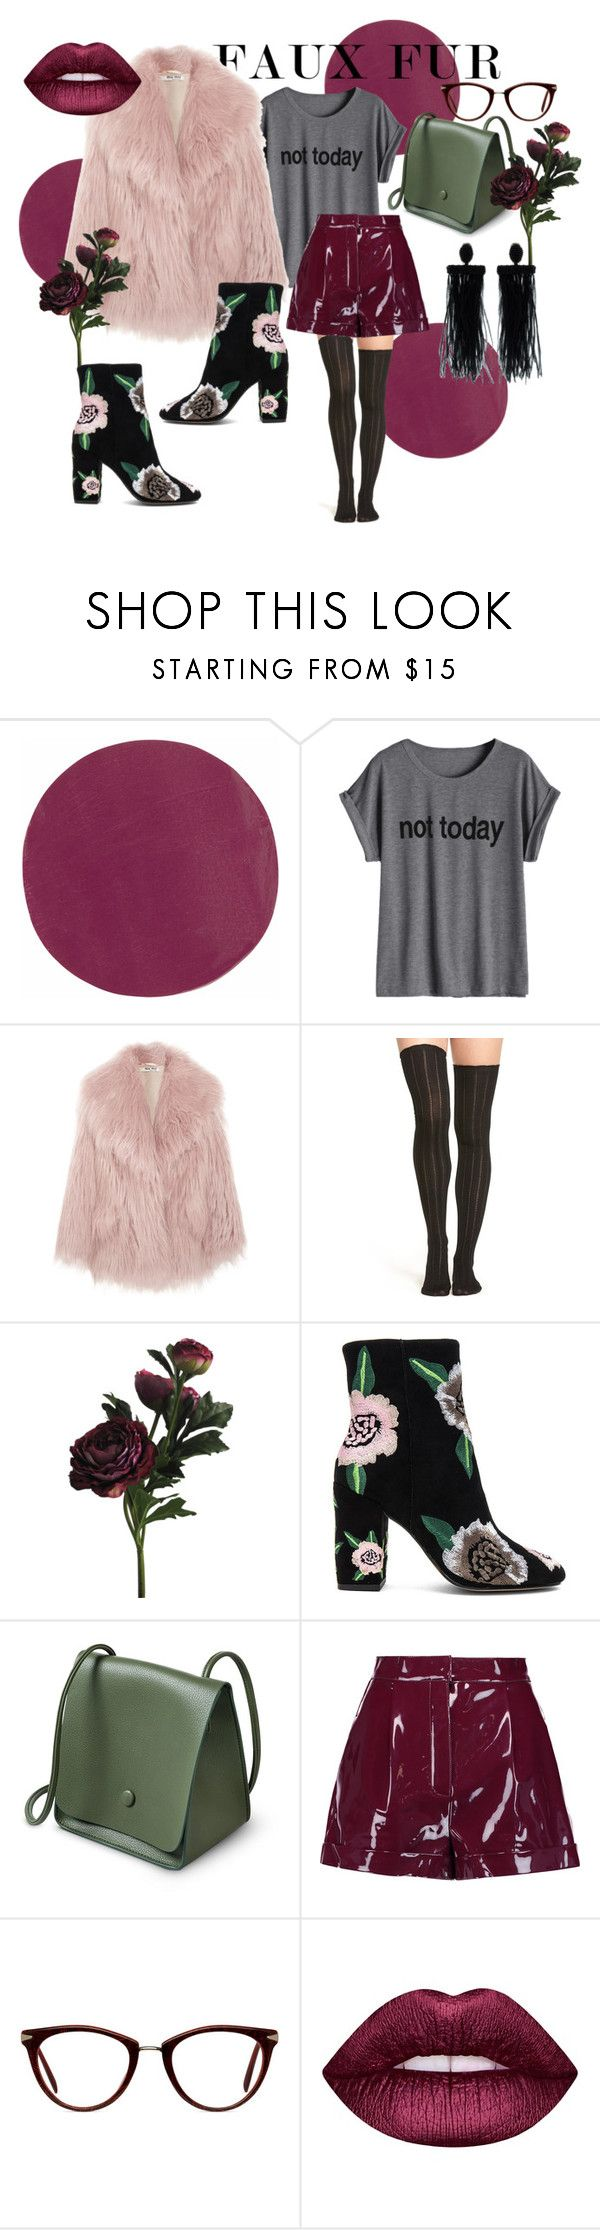 """fauxx"" by nover on Polyvore featuring Kevyn Aucoin, Miu Miu, Urban Outfitters, Rebecca Minkoff, Valentino, GlassesUSA, Lime Crime and Oscar de la Renta"